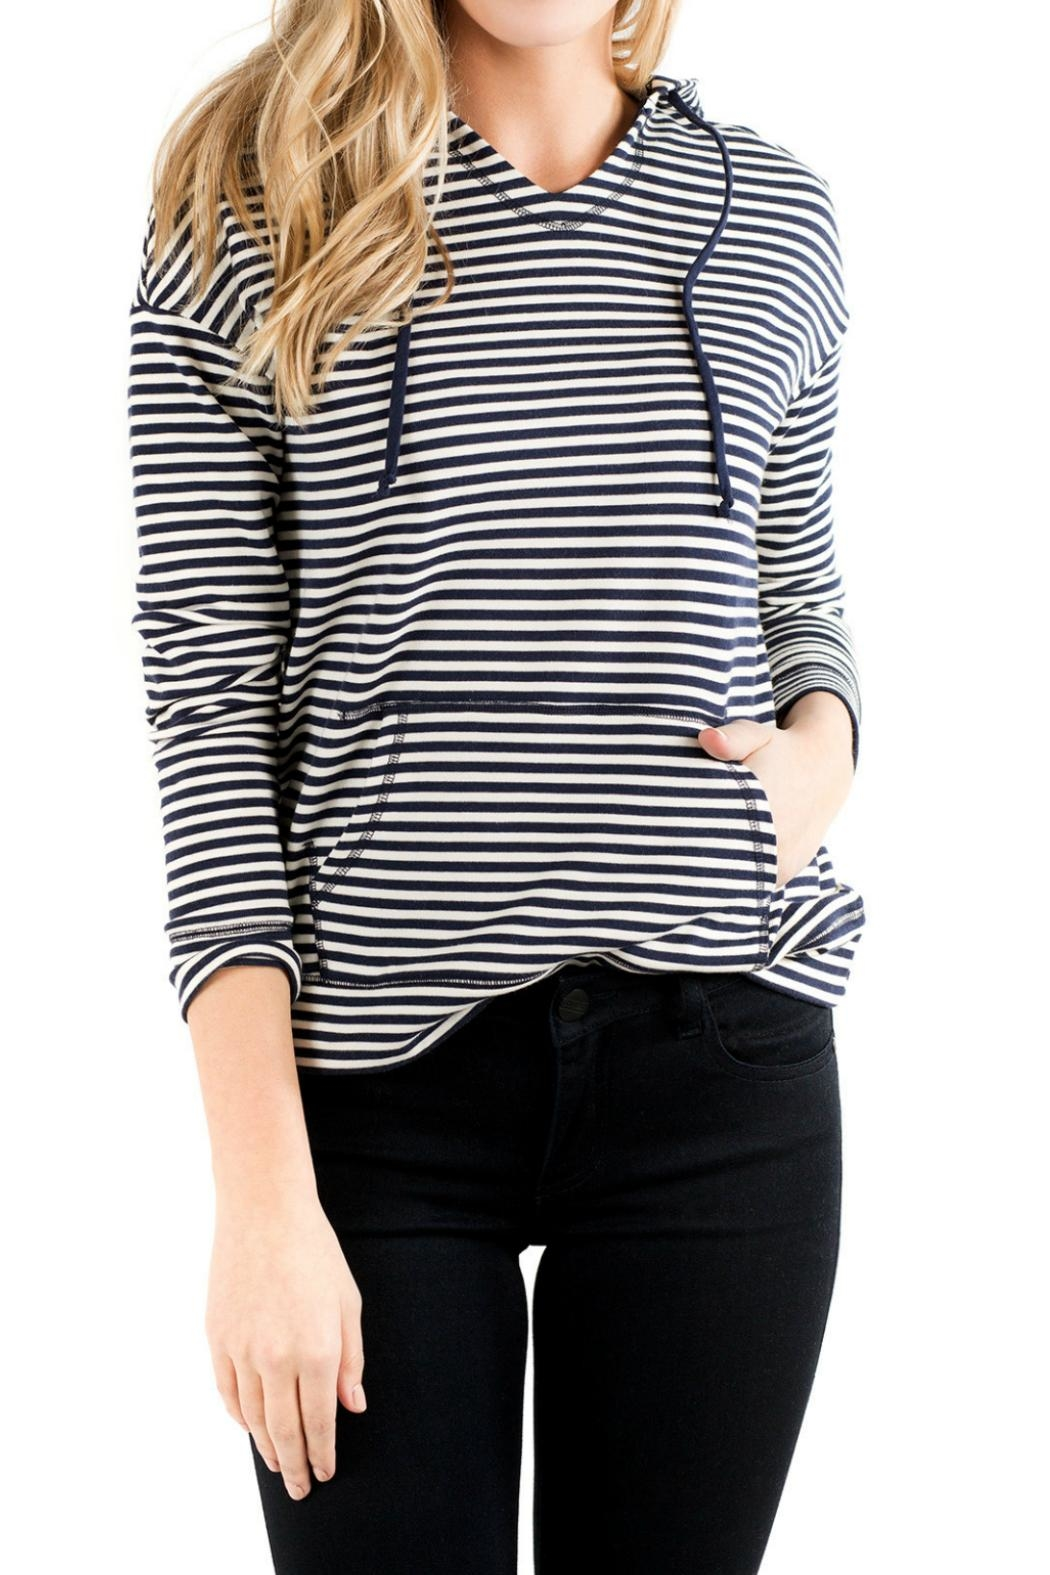 Downeast Basics Hooden Breeze Stripe - Main Image